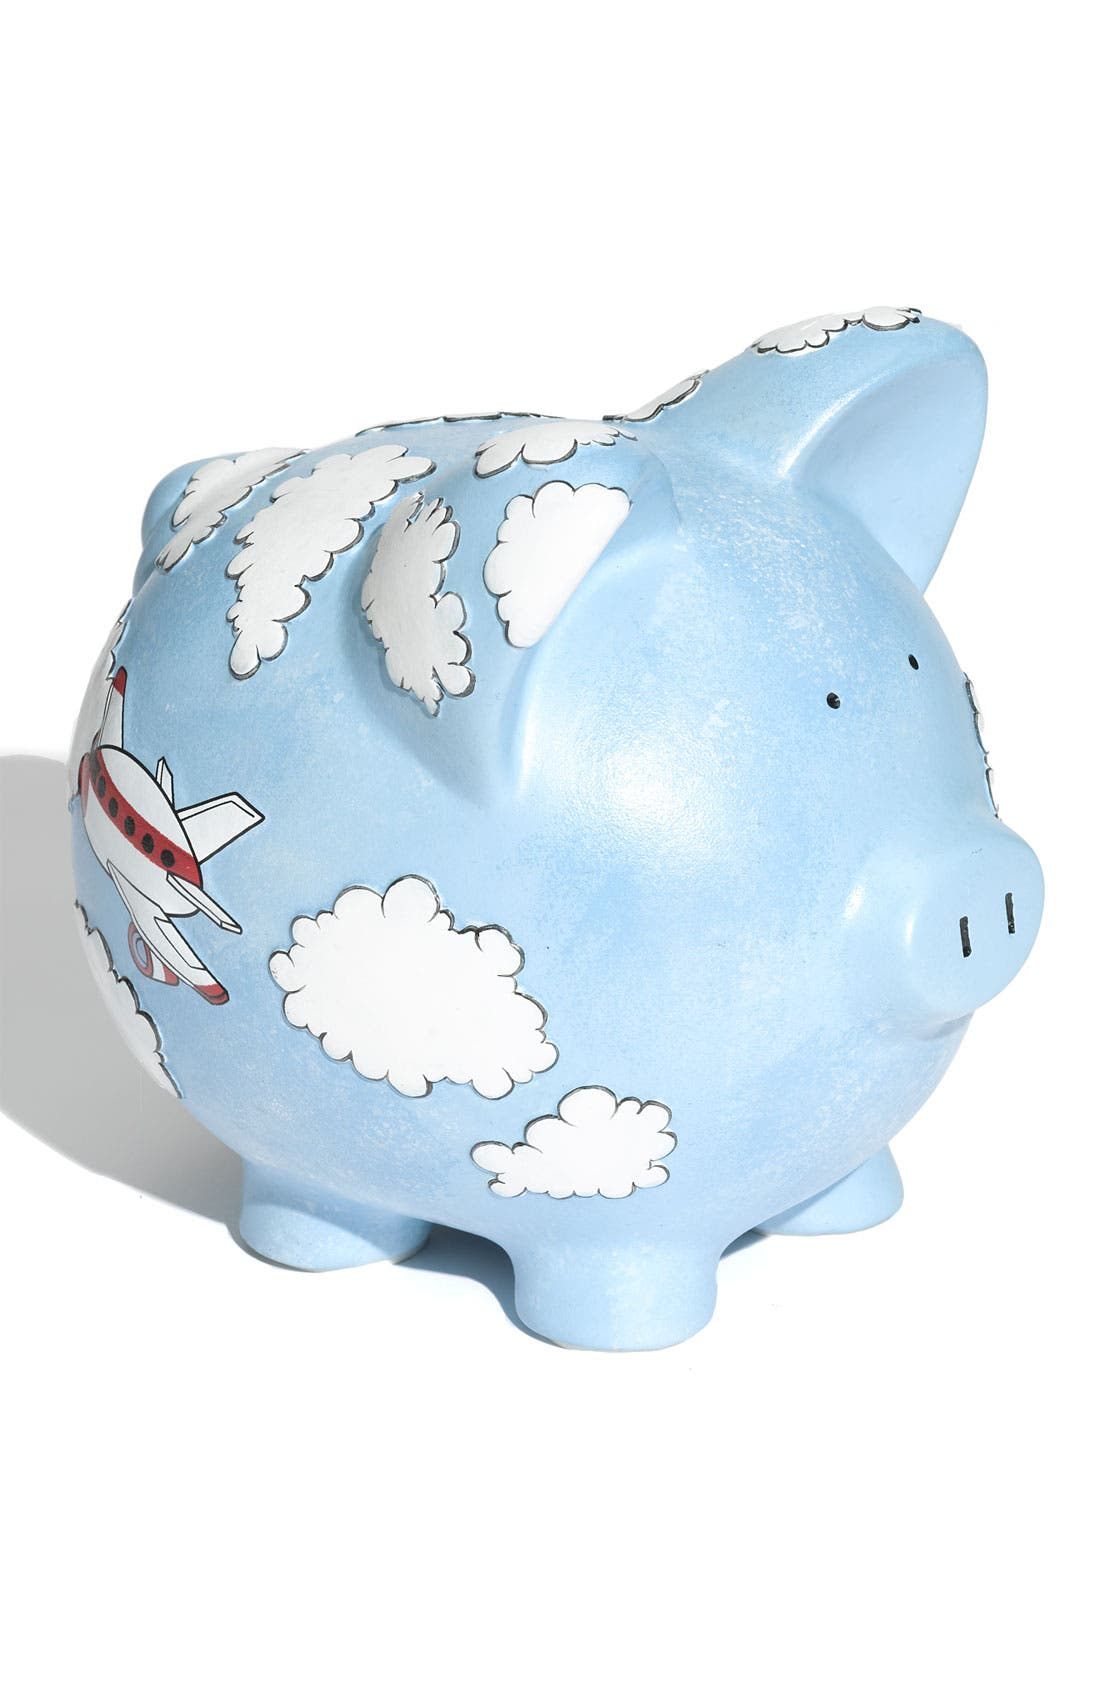 Alternate Image 1 Selected - Gift Giant 'Airplane - Large' Ceramic Piggy Bank